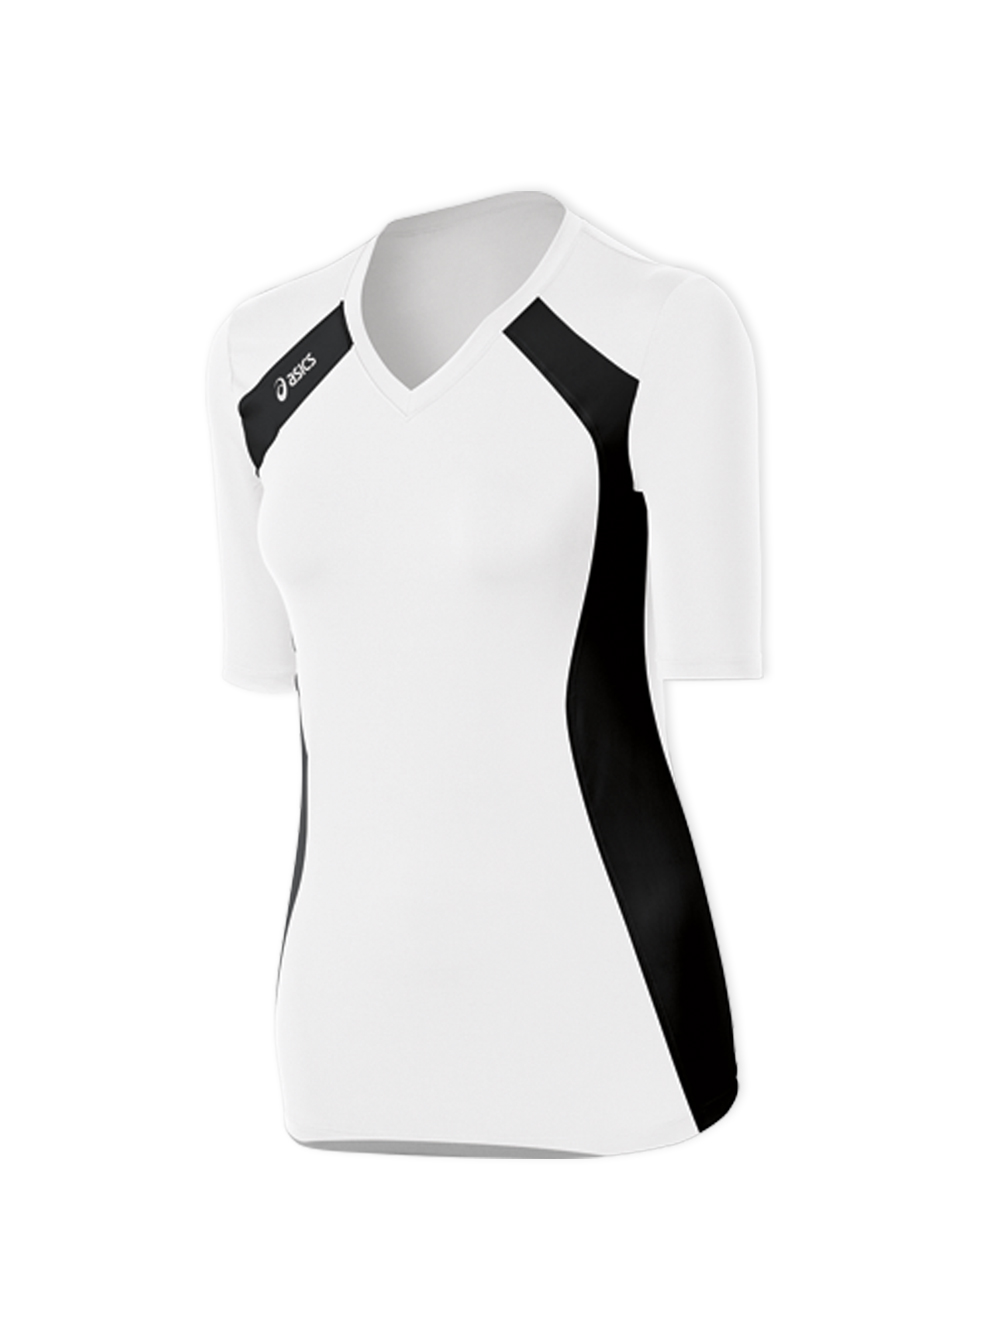 ad2d77c9bf0 ASICS Aggressor 3/4 Sleeve Jersey - White/Black | Midwest Volleyball ...